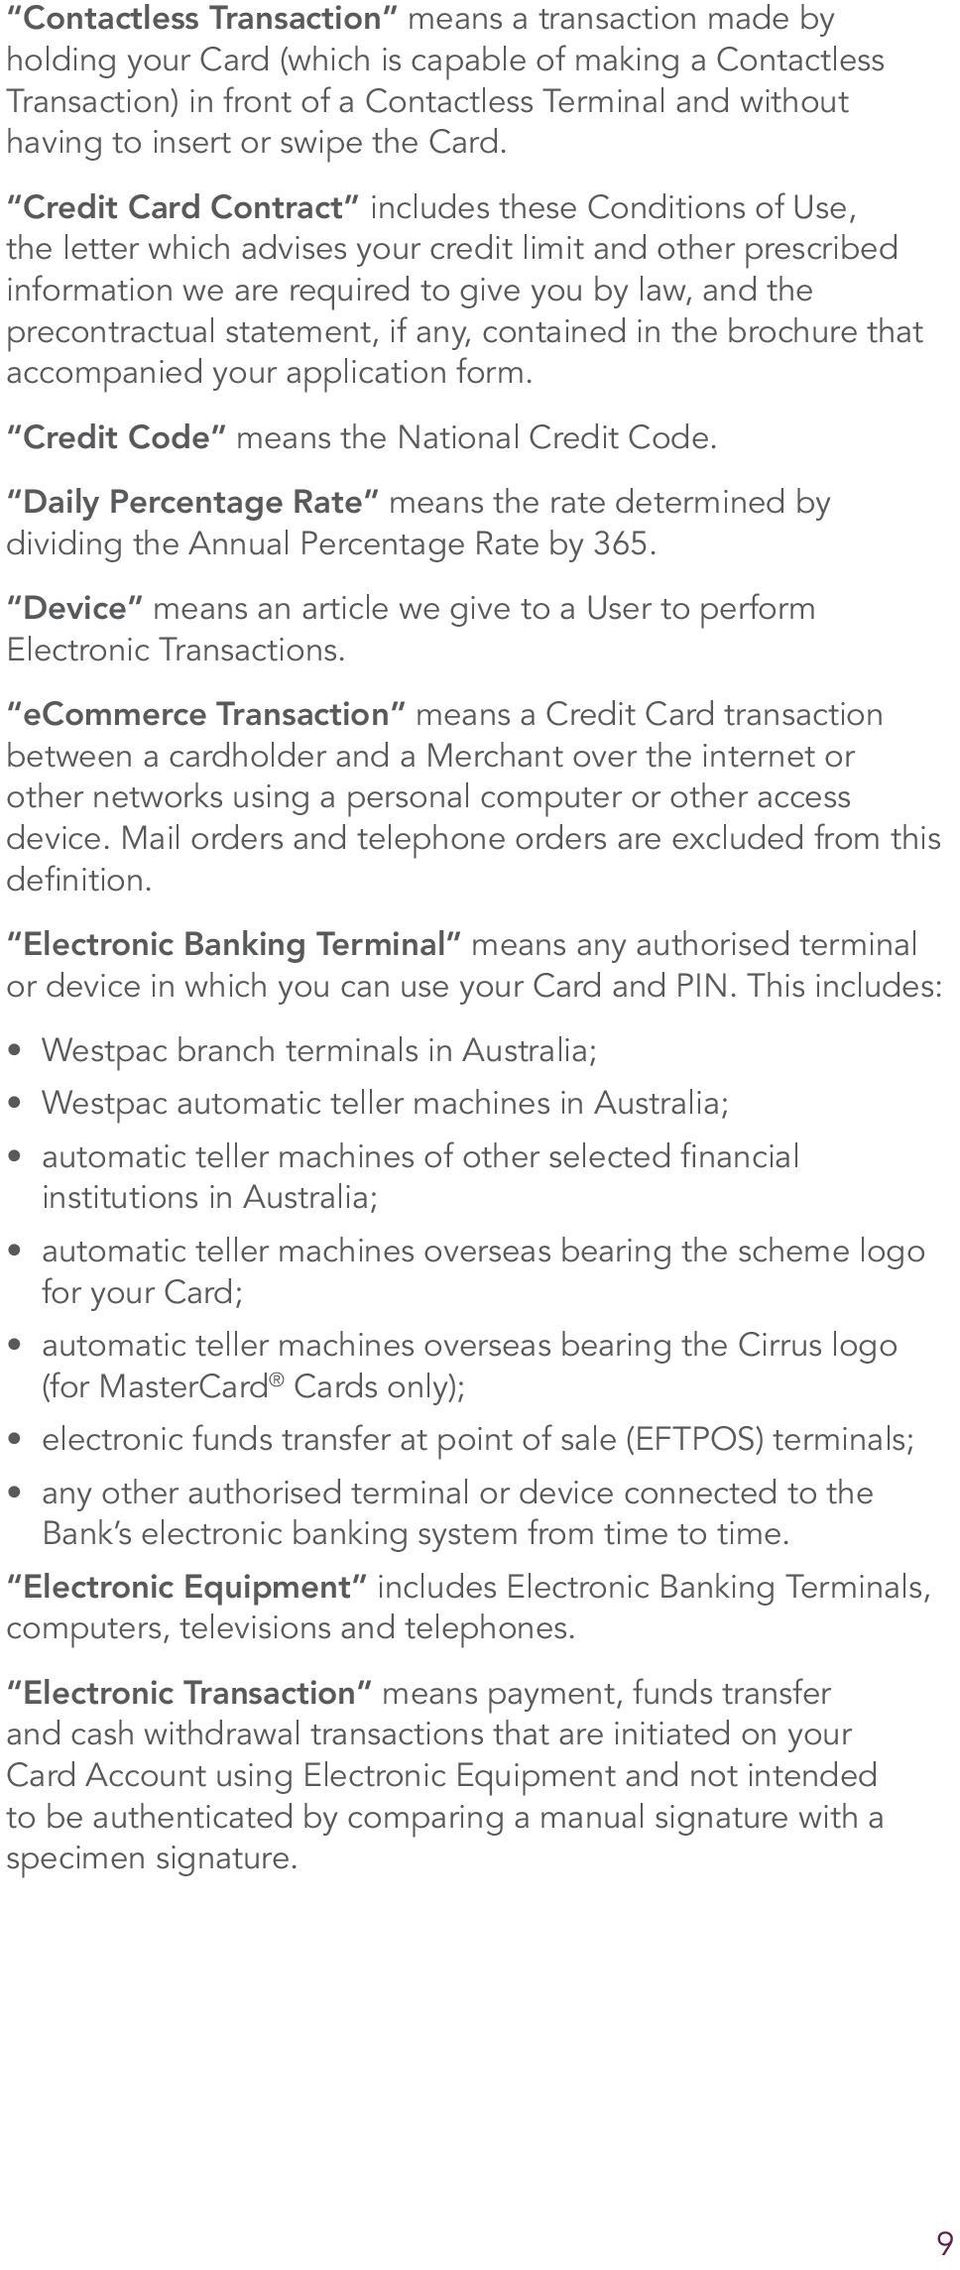 Credit Card Contract includes these Conditions of Use, the letter which advises your credit limit and other prescribed information we are required to give you by law, and the precontractual